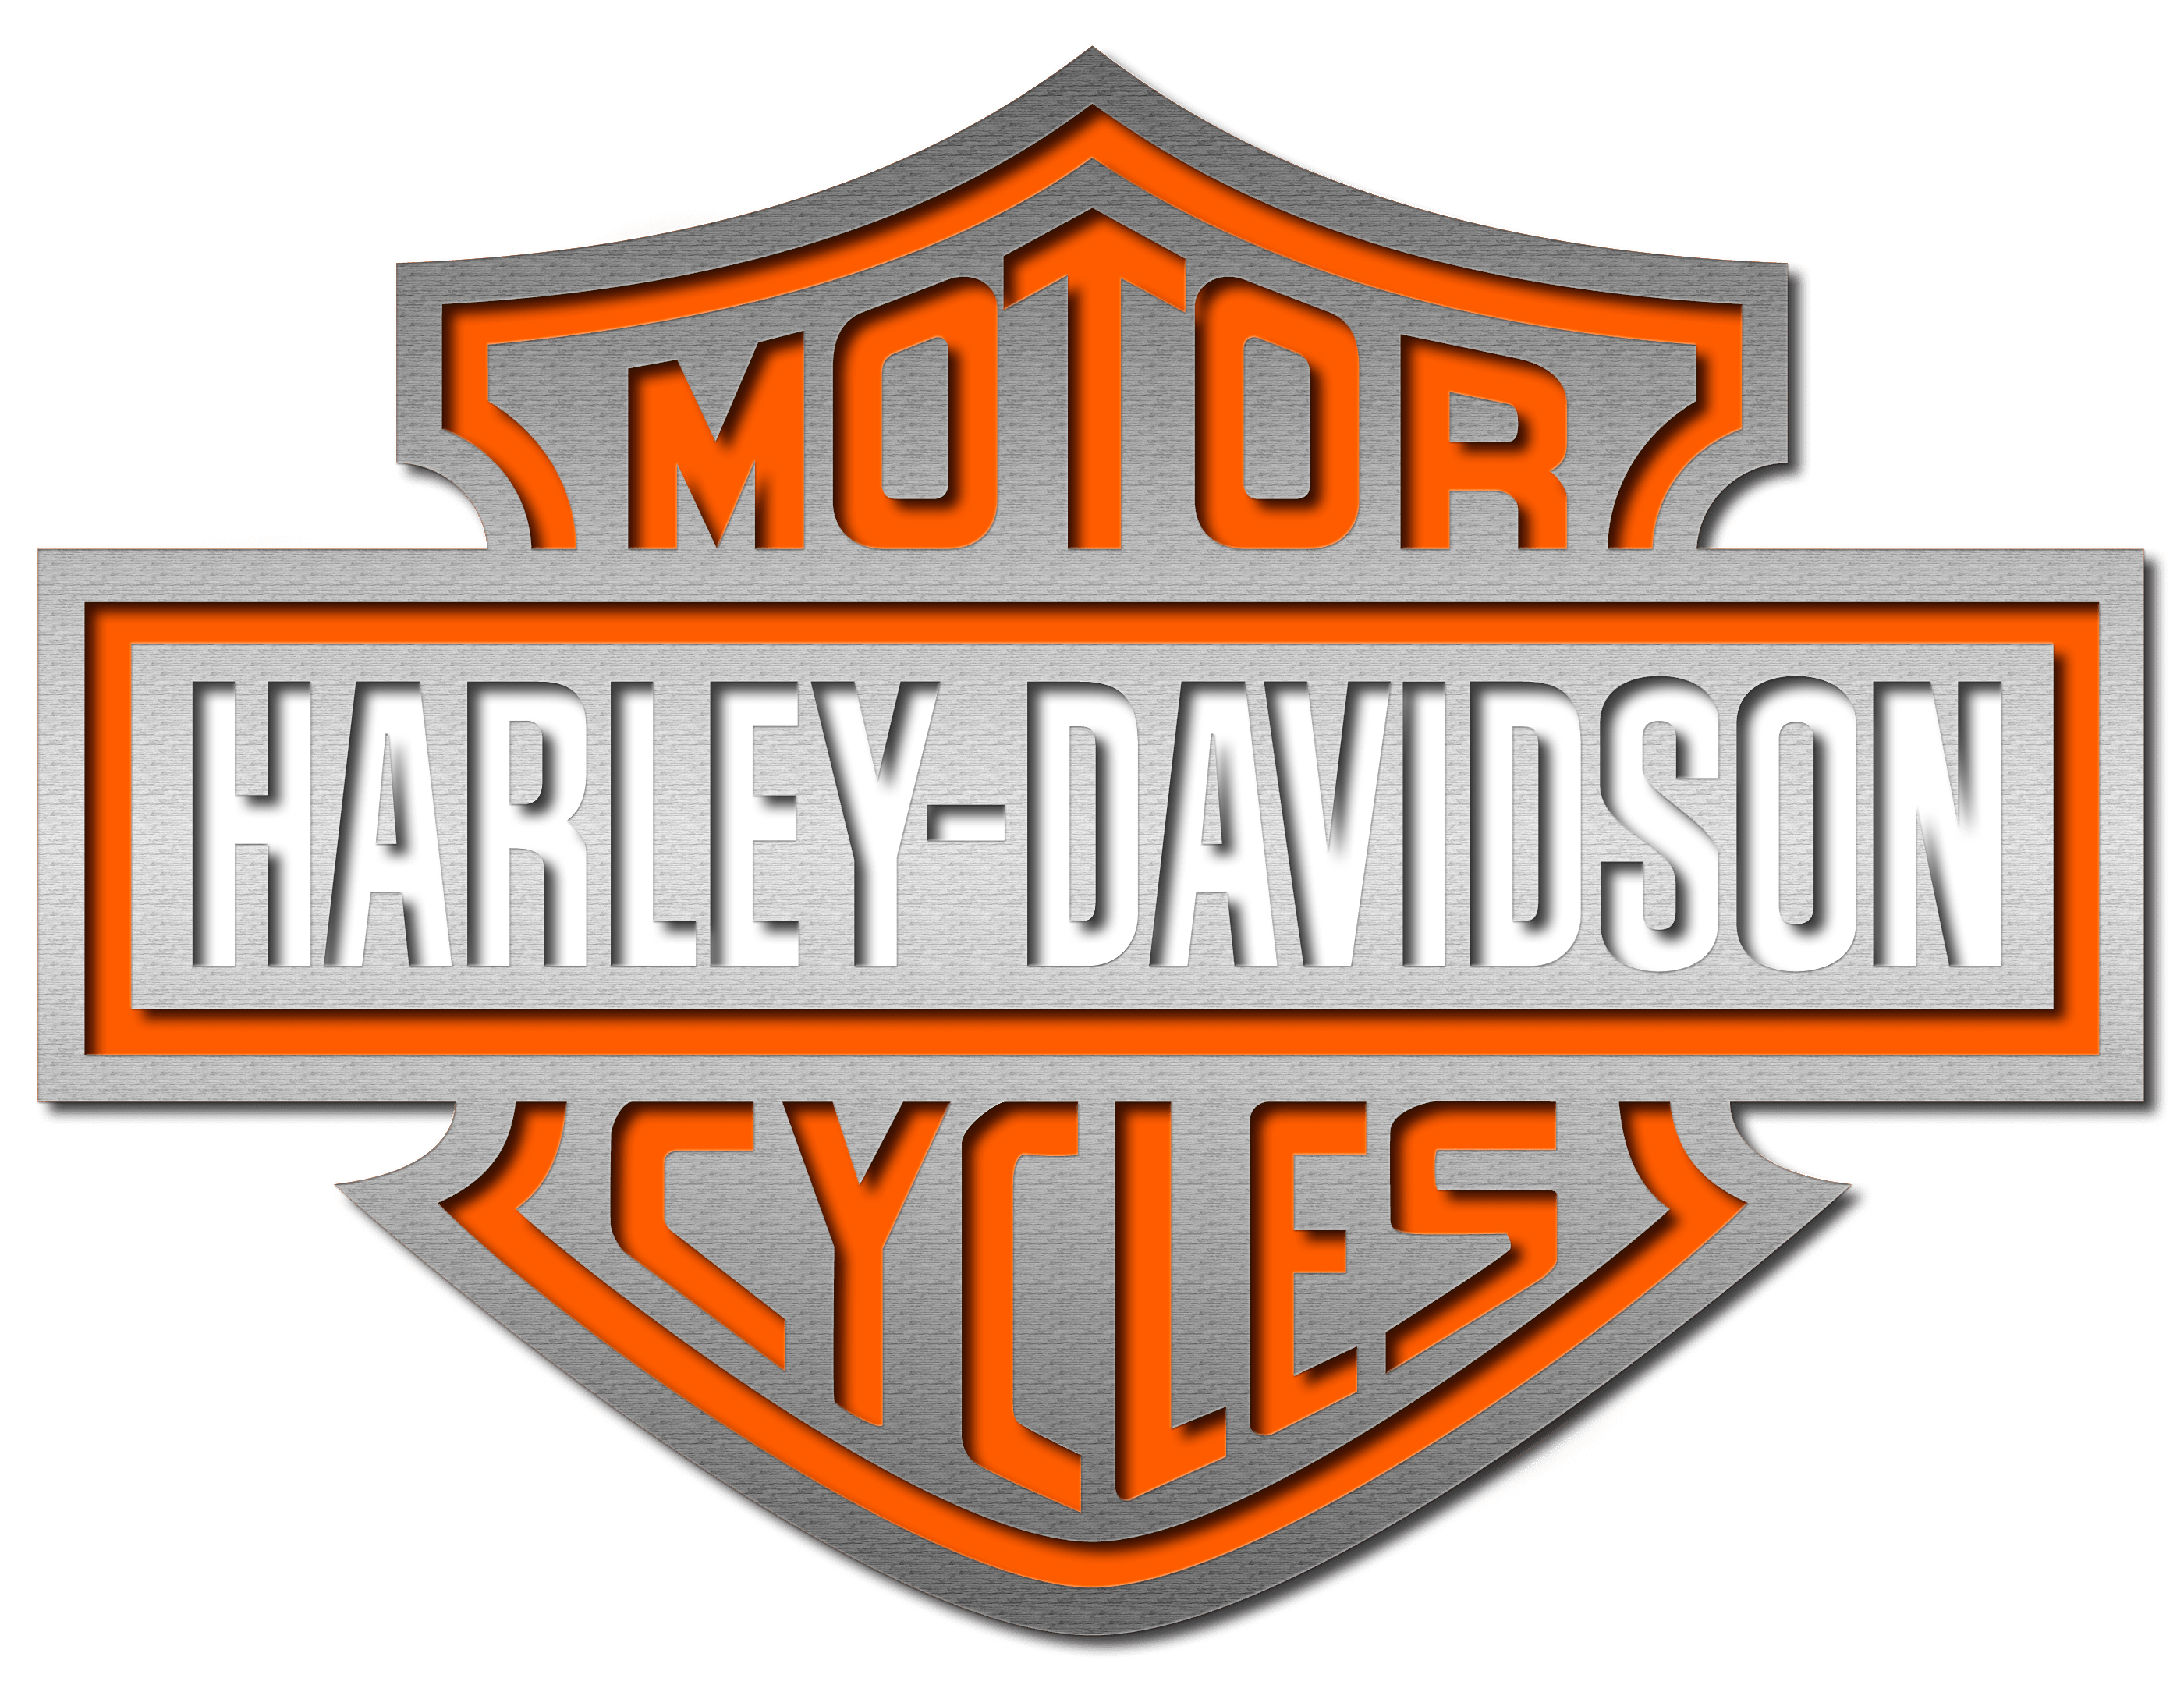 harley davidson v twin engine diagrams harley davidson